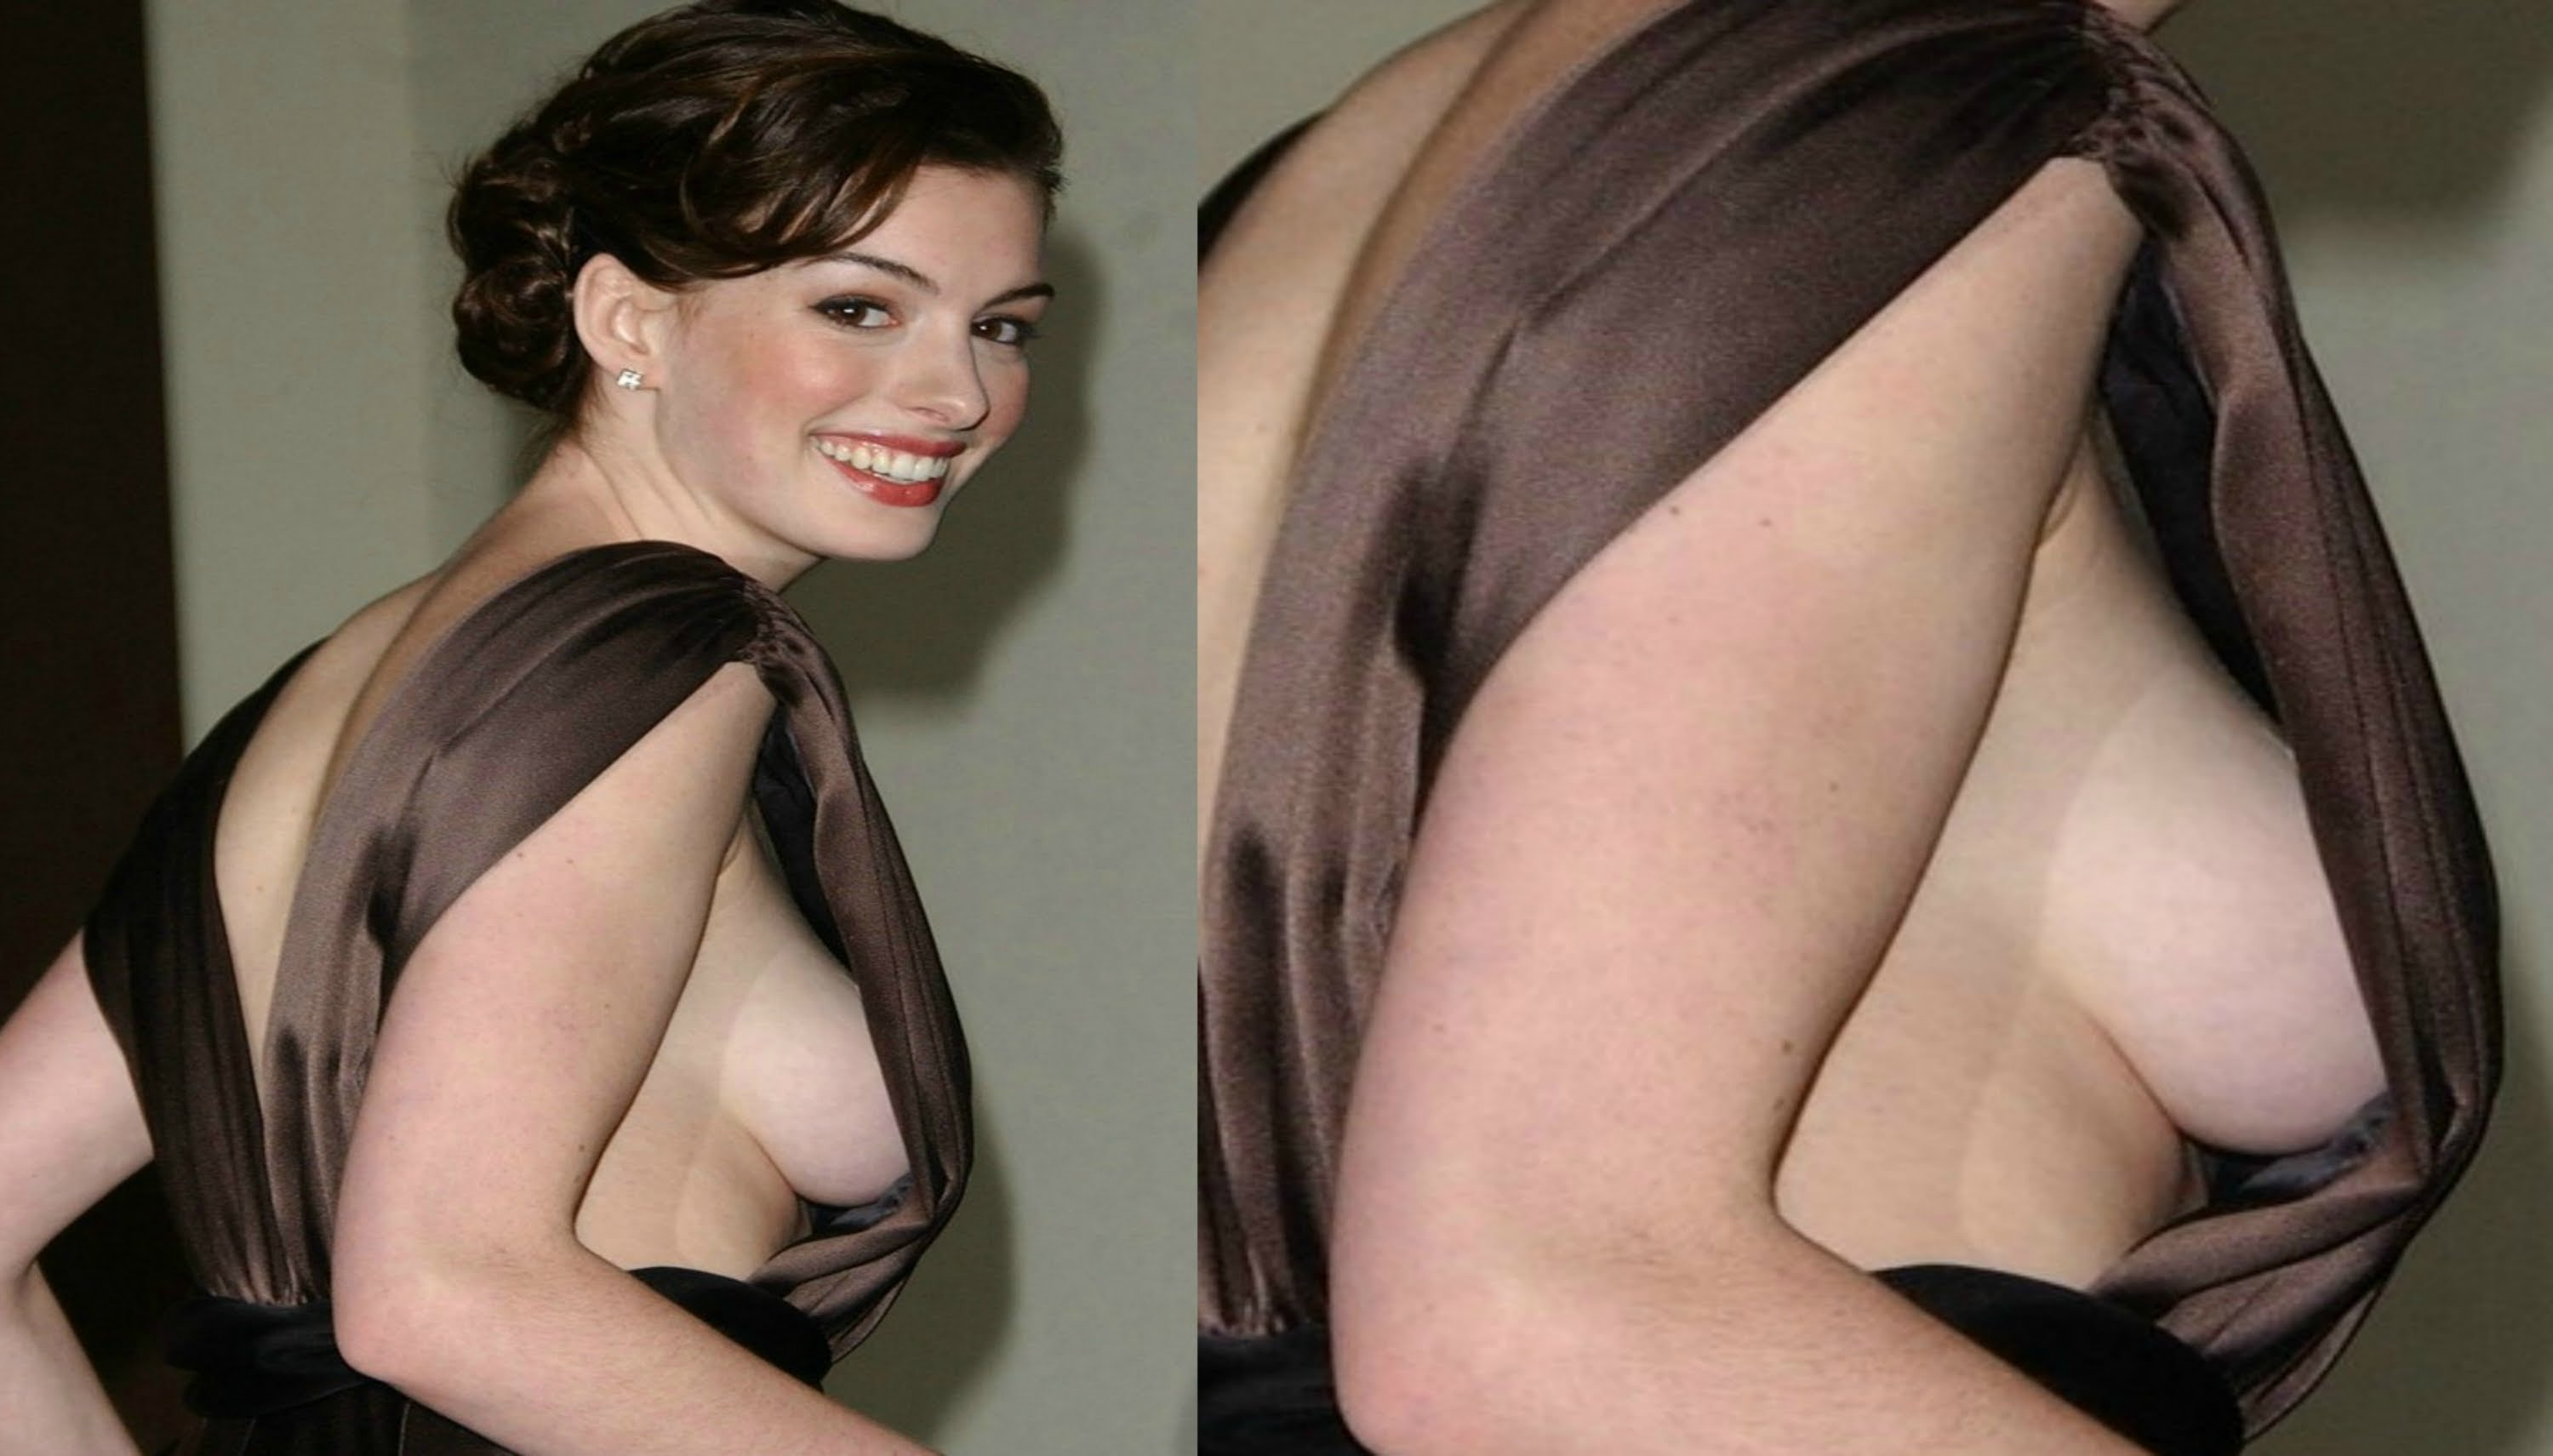 Anne Hathaway Porno anne hathaway nude - 14 pictures: rating 8.63/10